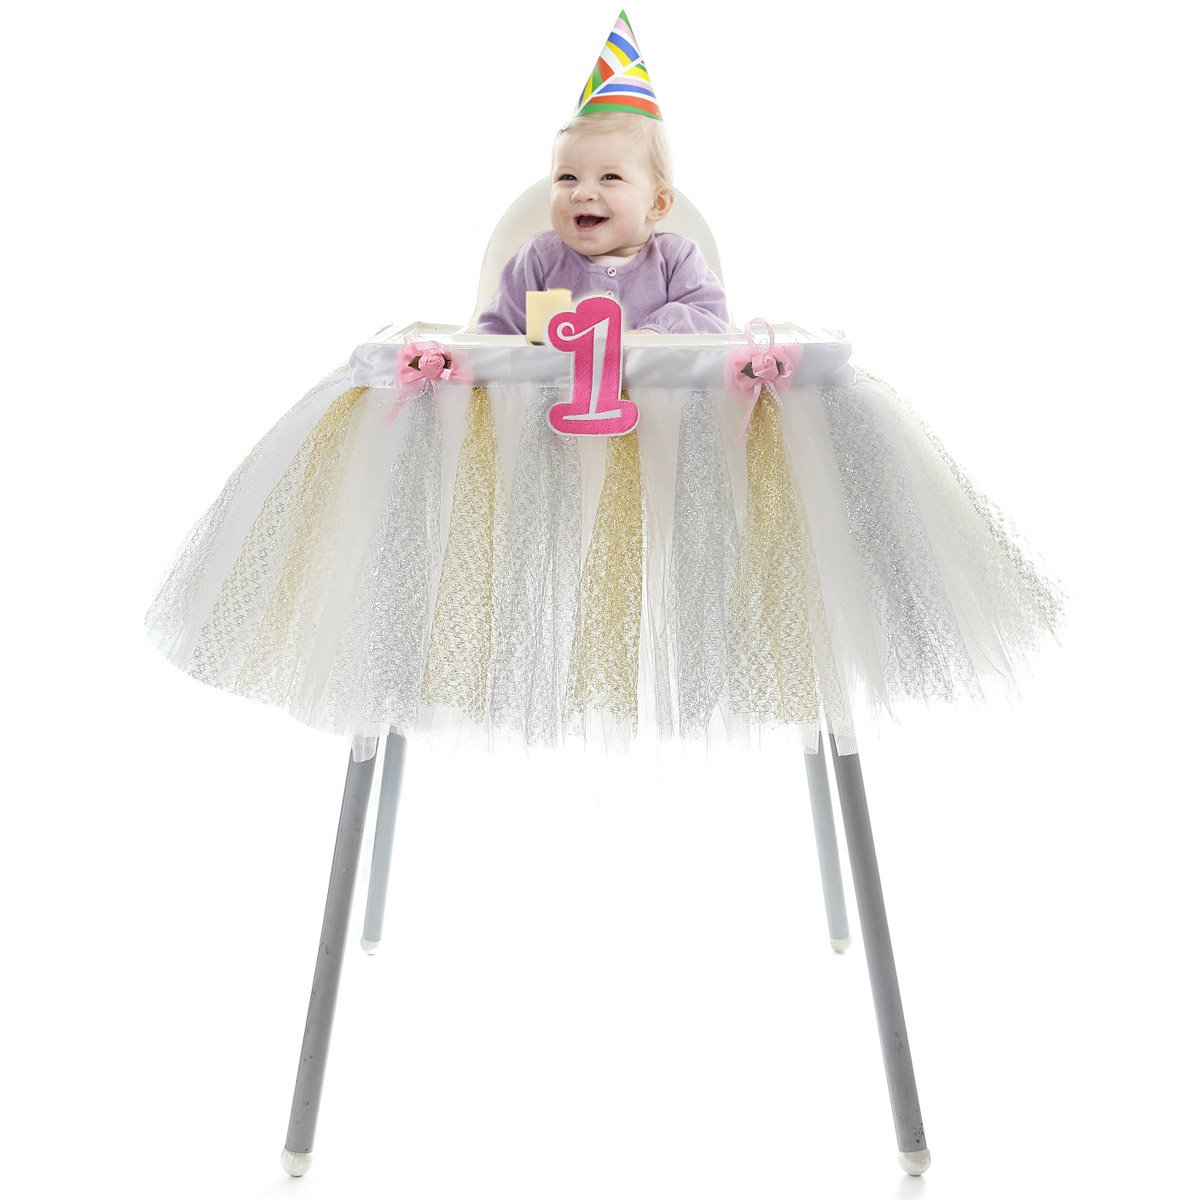 HB HBB MAGIC High Chair Skirt 1st Birthday Baby Girls Tutu High Chair